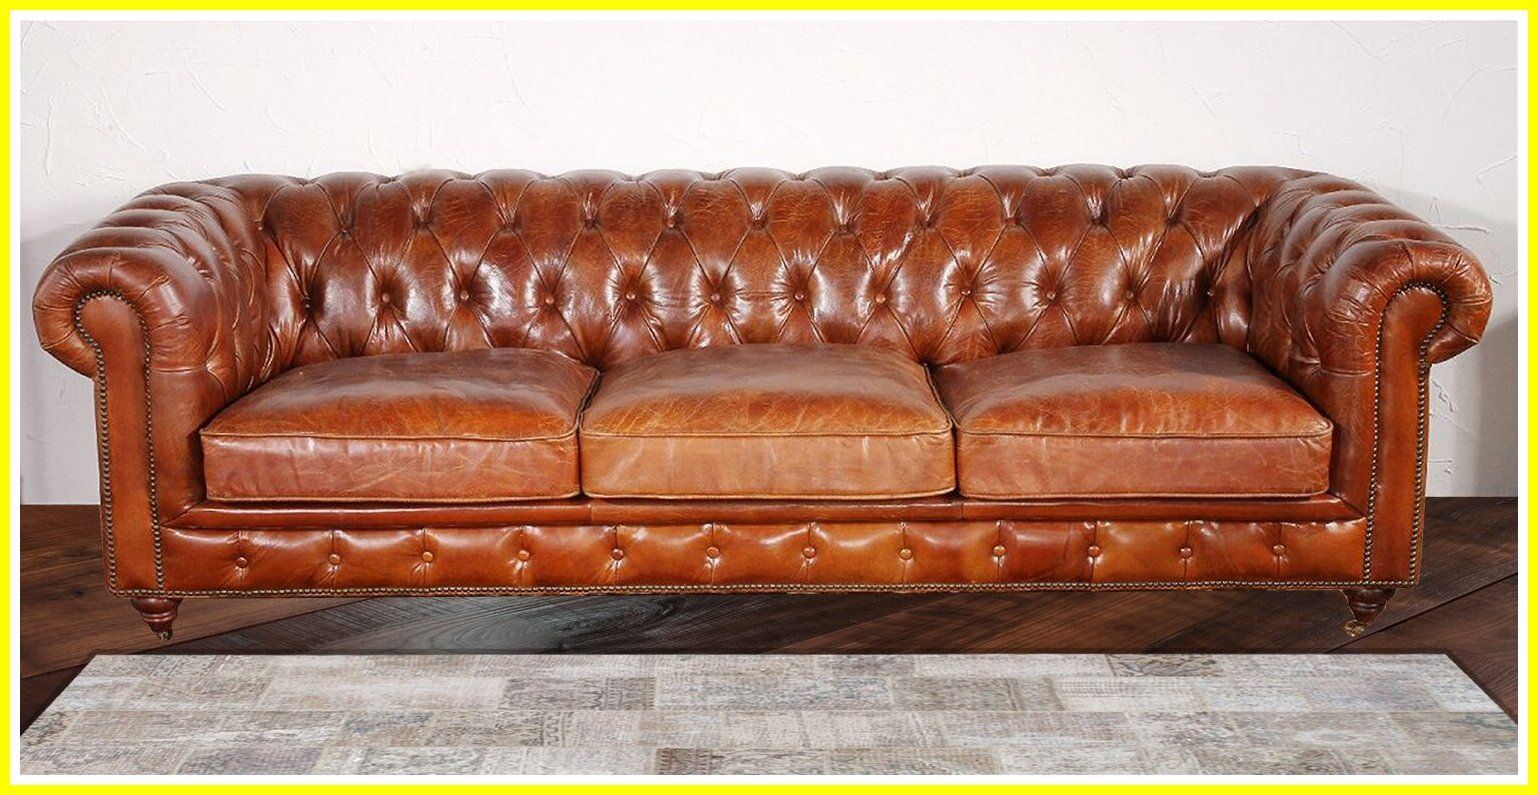 97 Reference Of Chesterfield Loveseat Sofa In 2020 Chesterfield Sofa Tufted Chesterfield Sofa Tufted Sofa